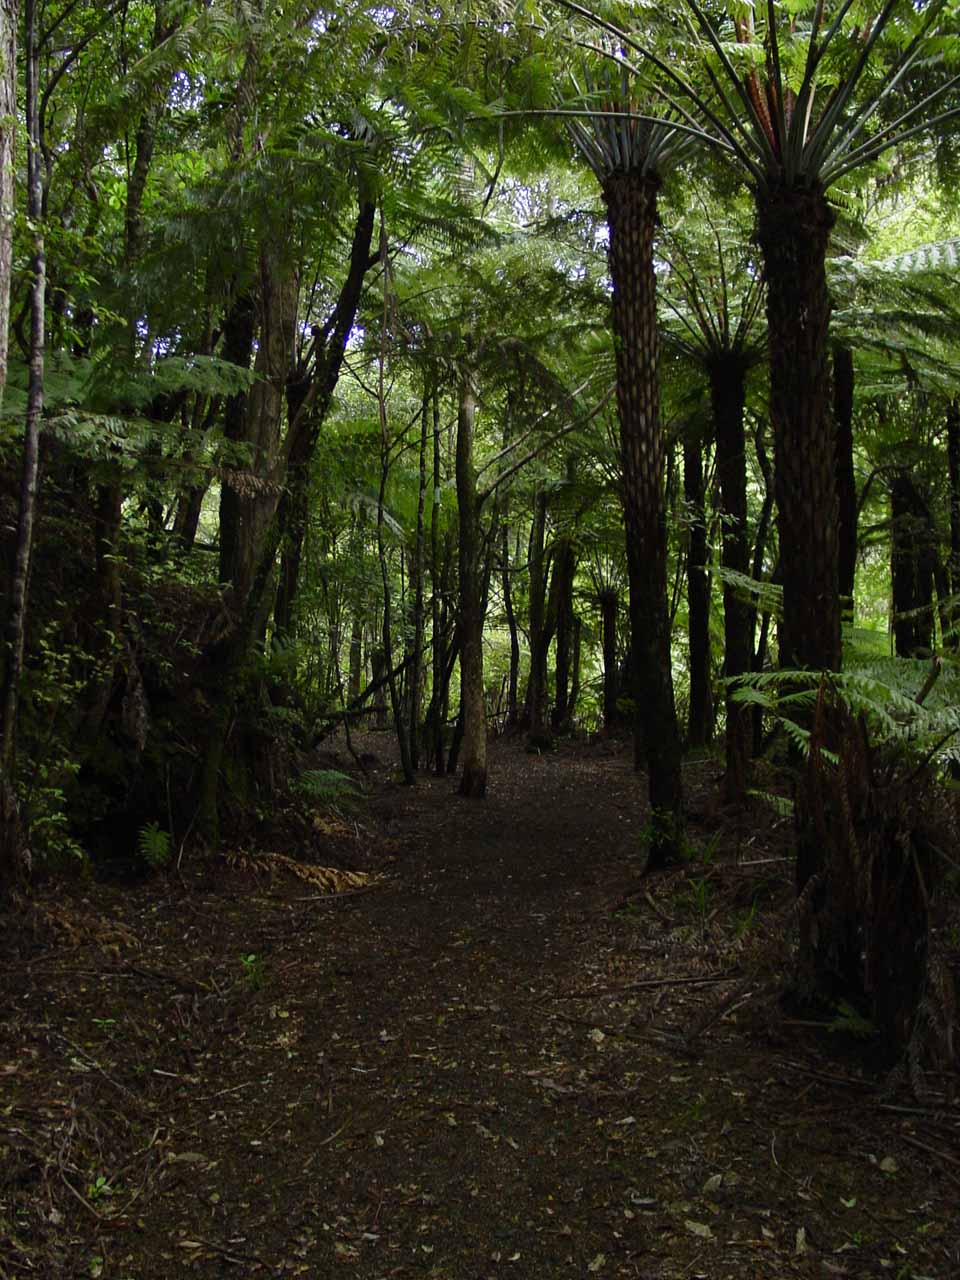 Walking through a shady forest on the way to Wentworth Falls